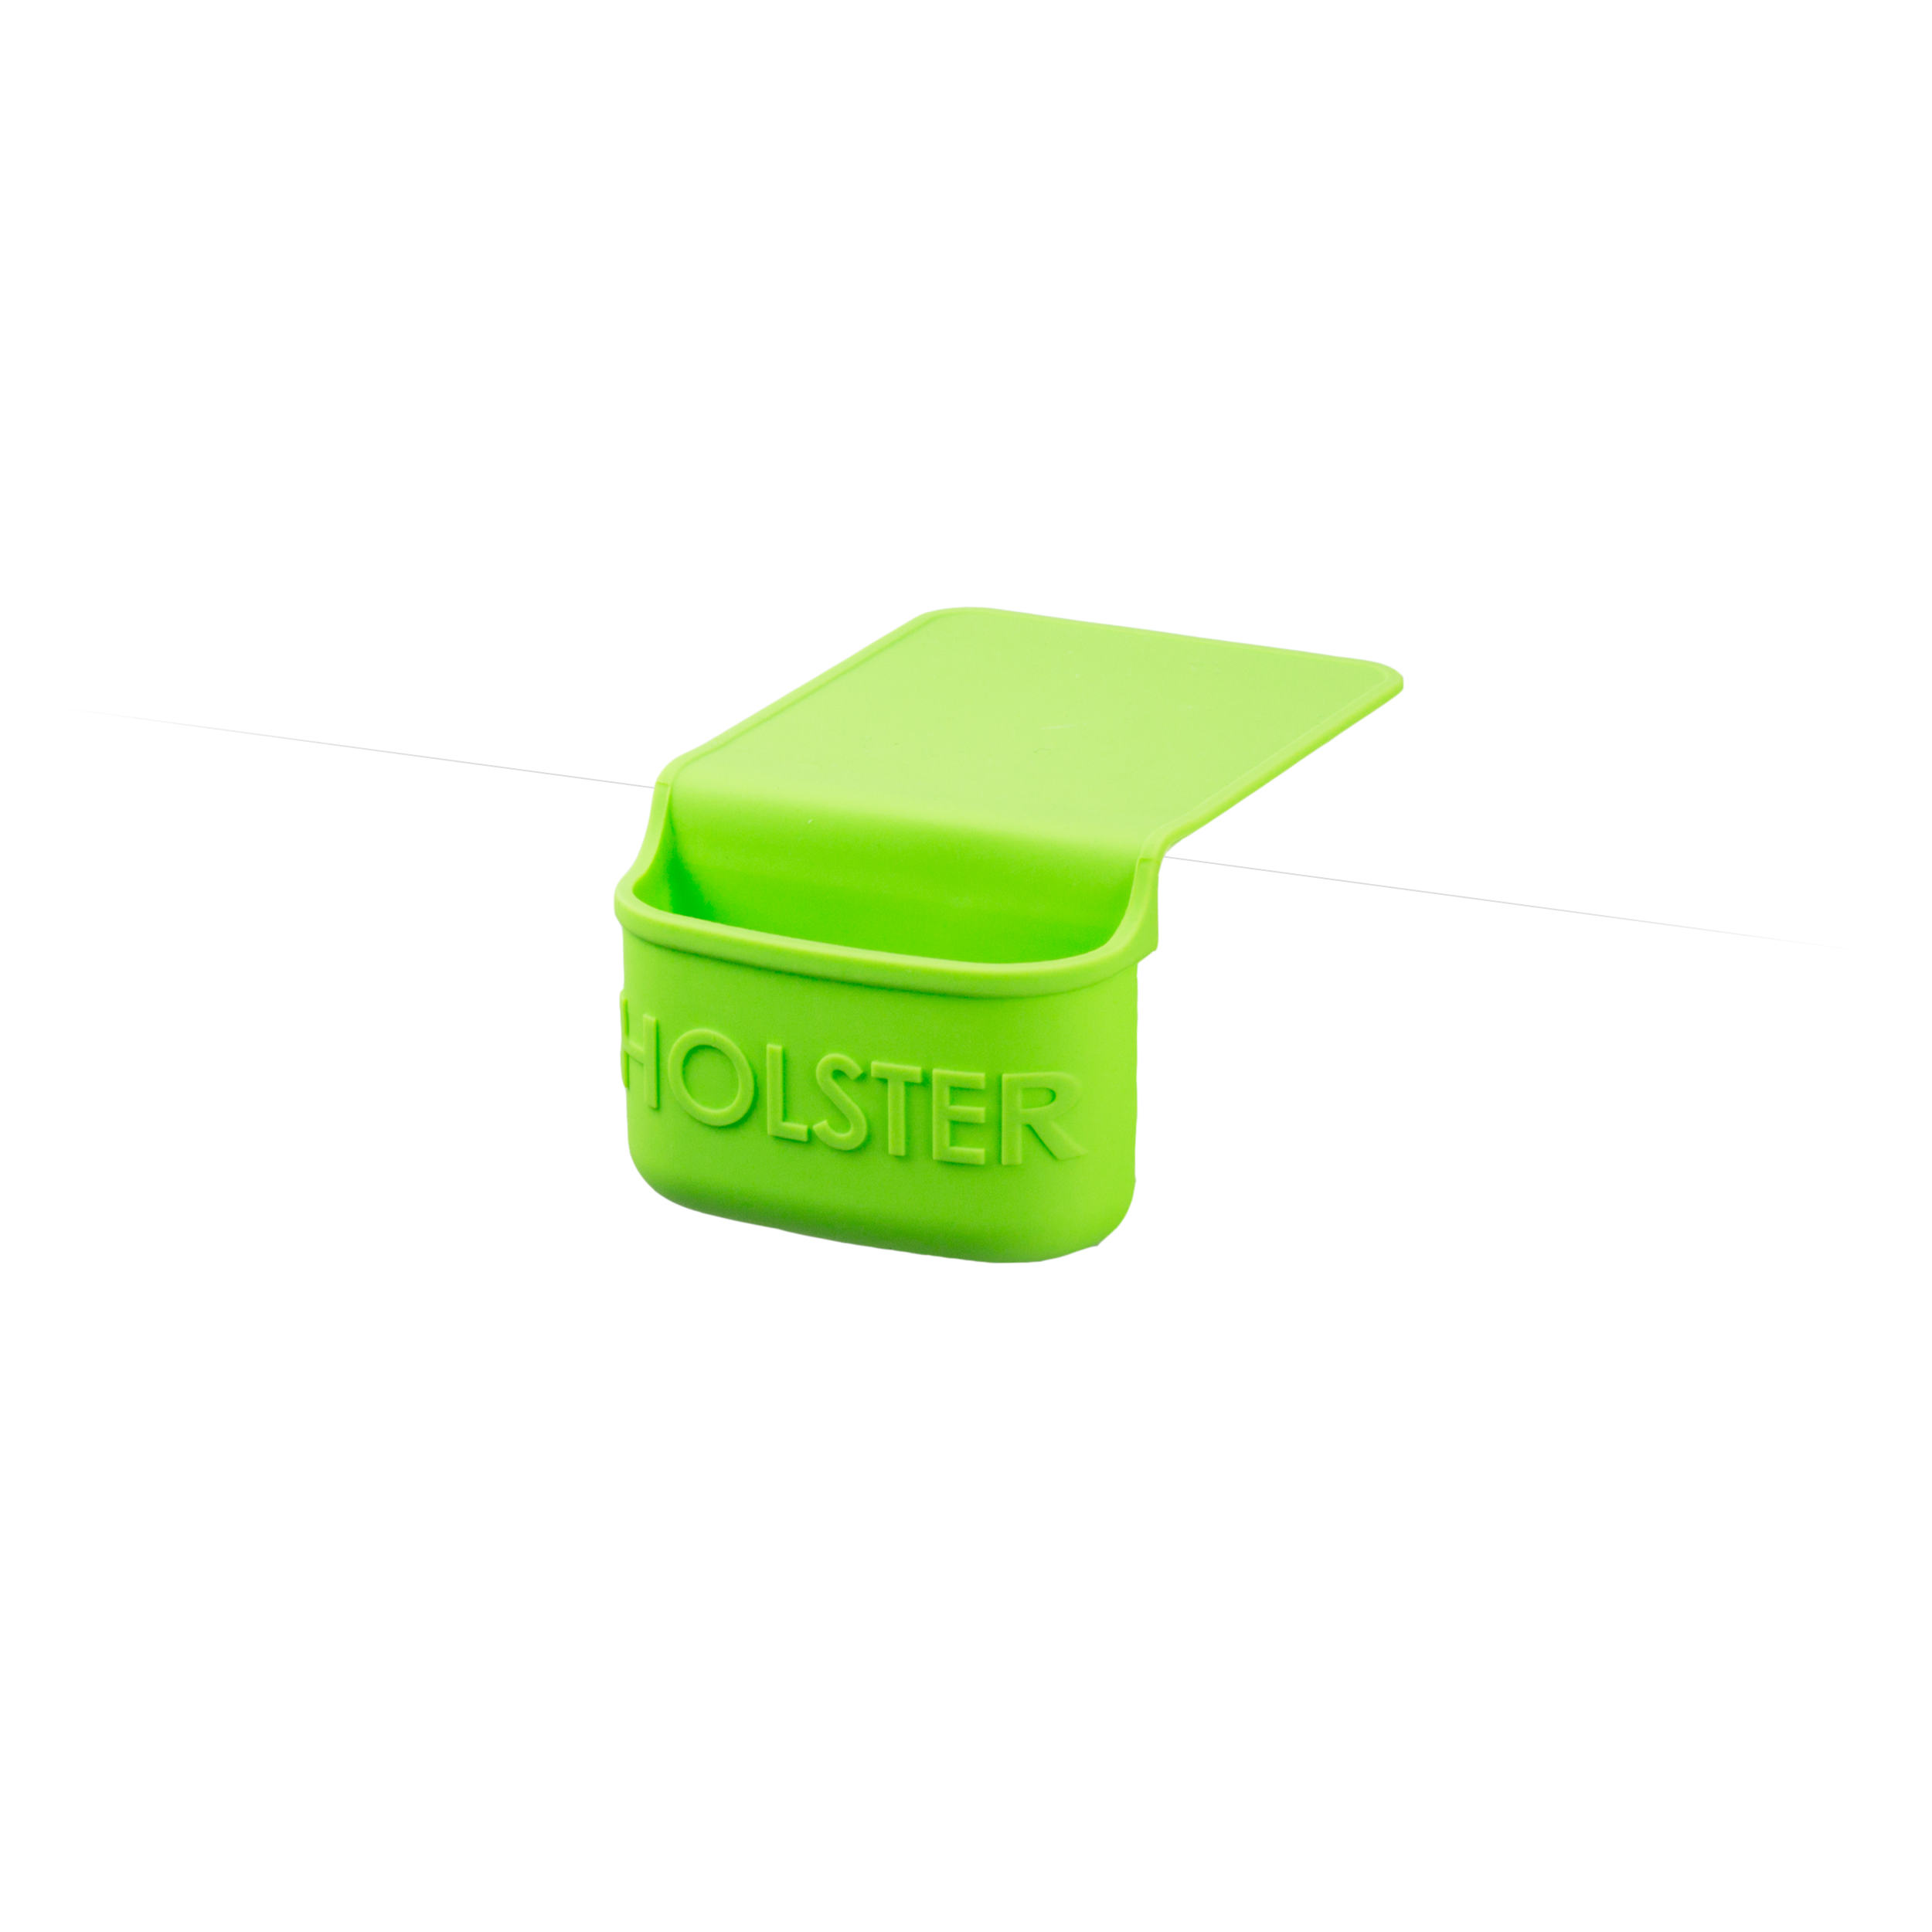 Holster Brands Lil' Holster Mini, Silicone Sponge and Soap Holder for Kitchen Accessories